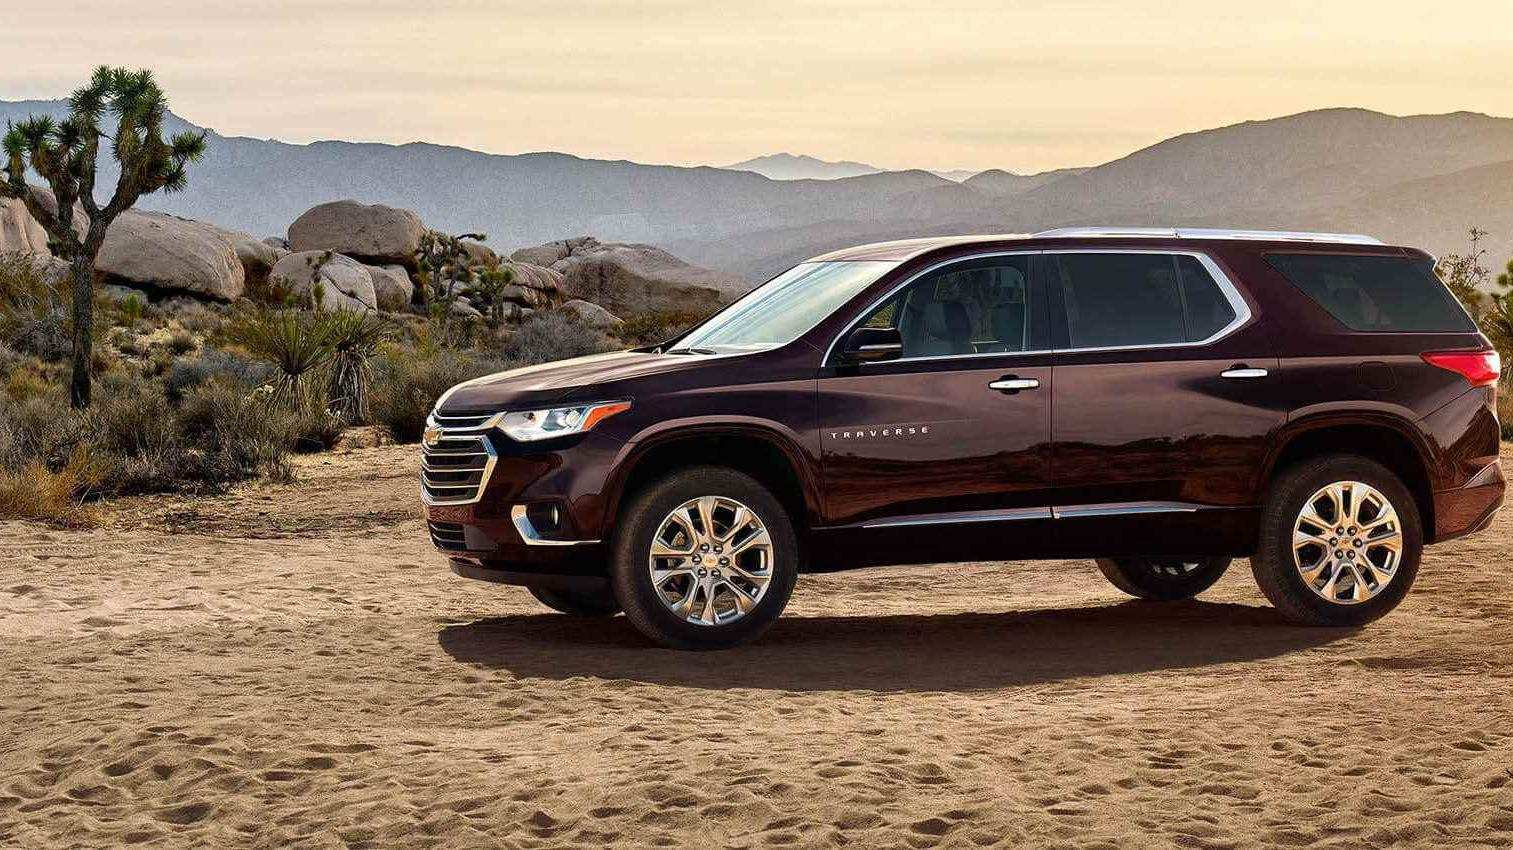 67 The Best 2019 Chevrolet Traverses Wallpaper